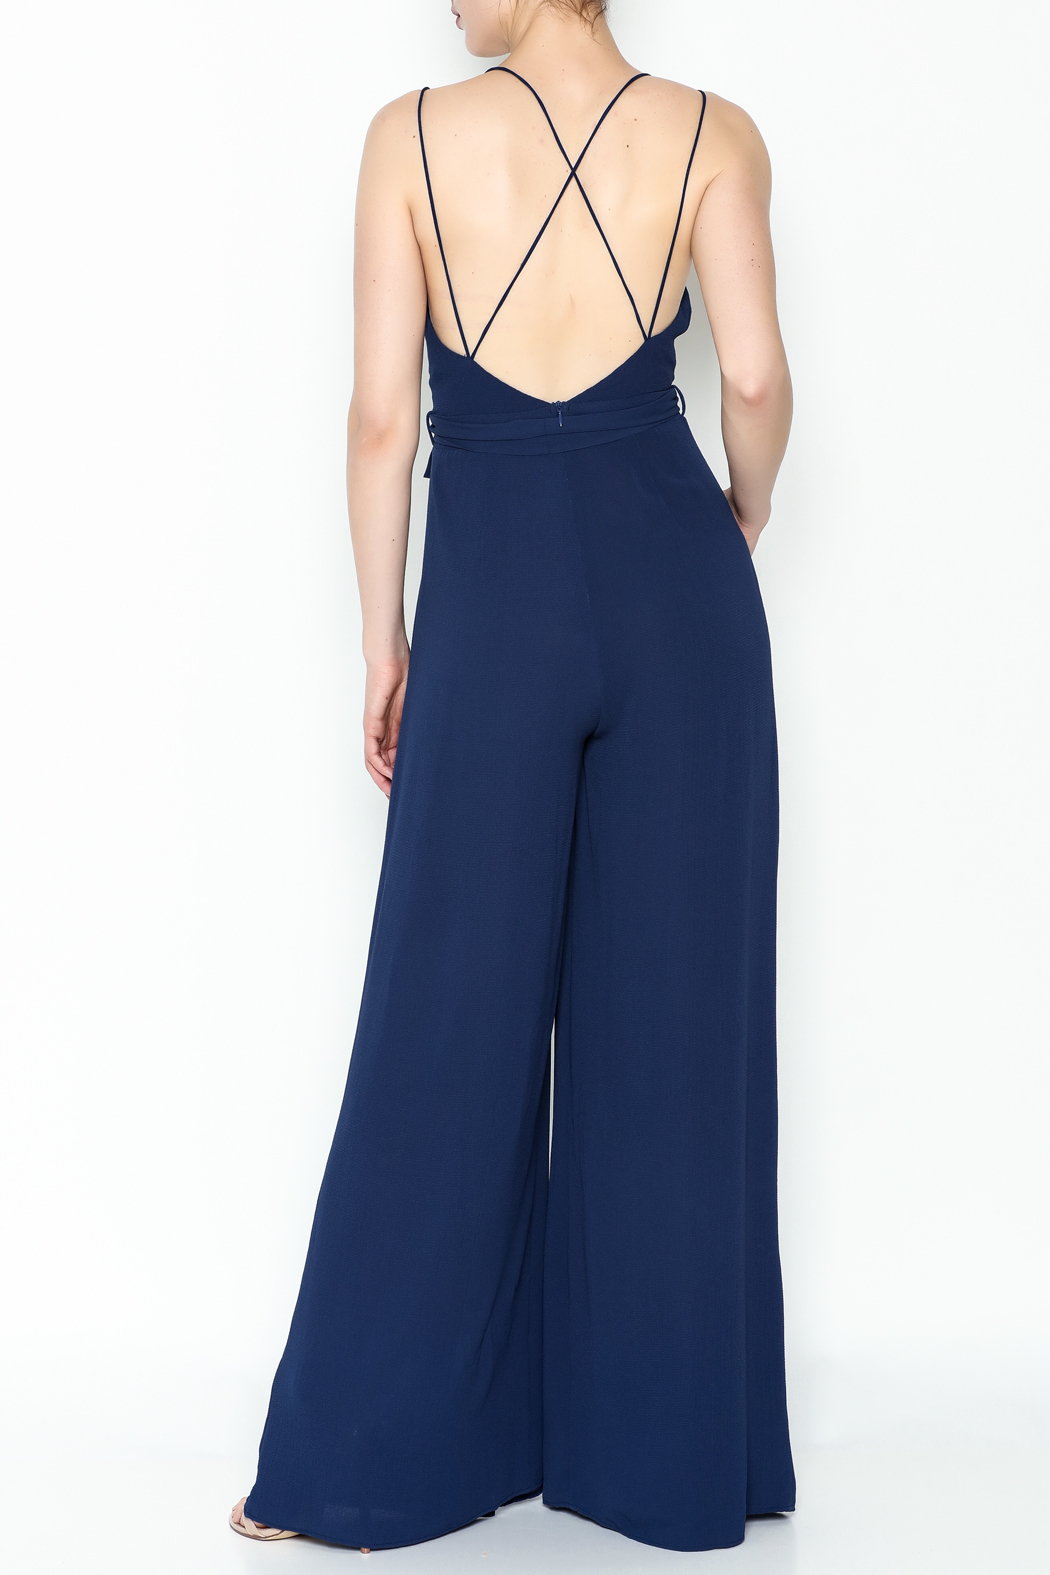 luxxel Strappy Jumpsuit - Back Cropped Image